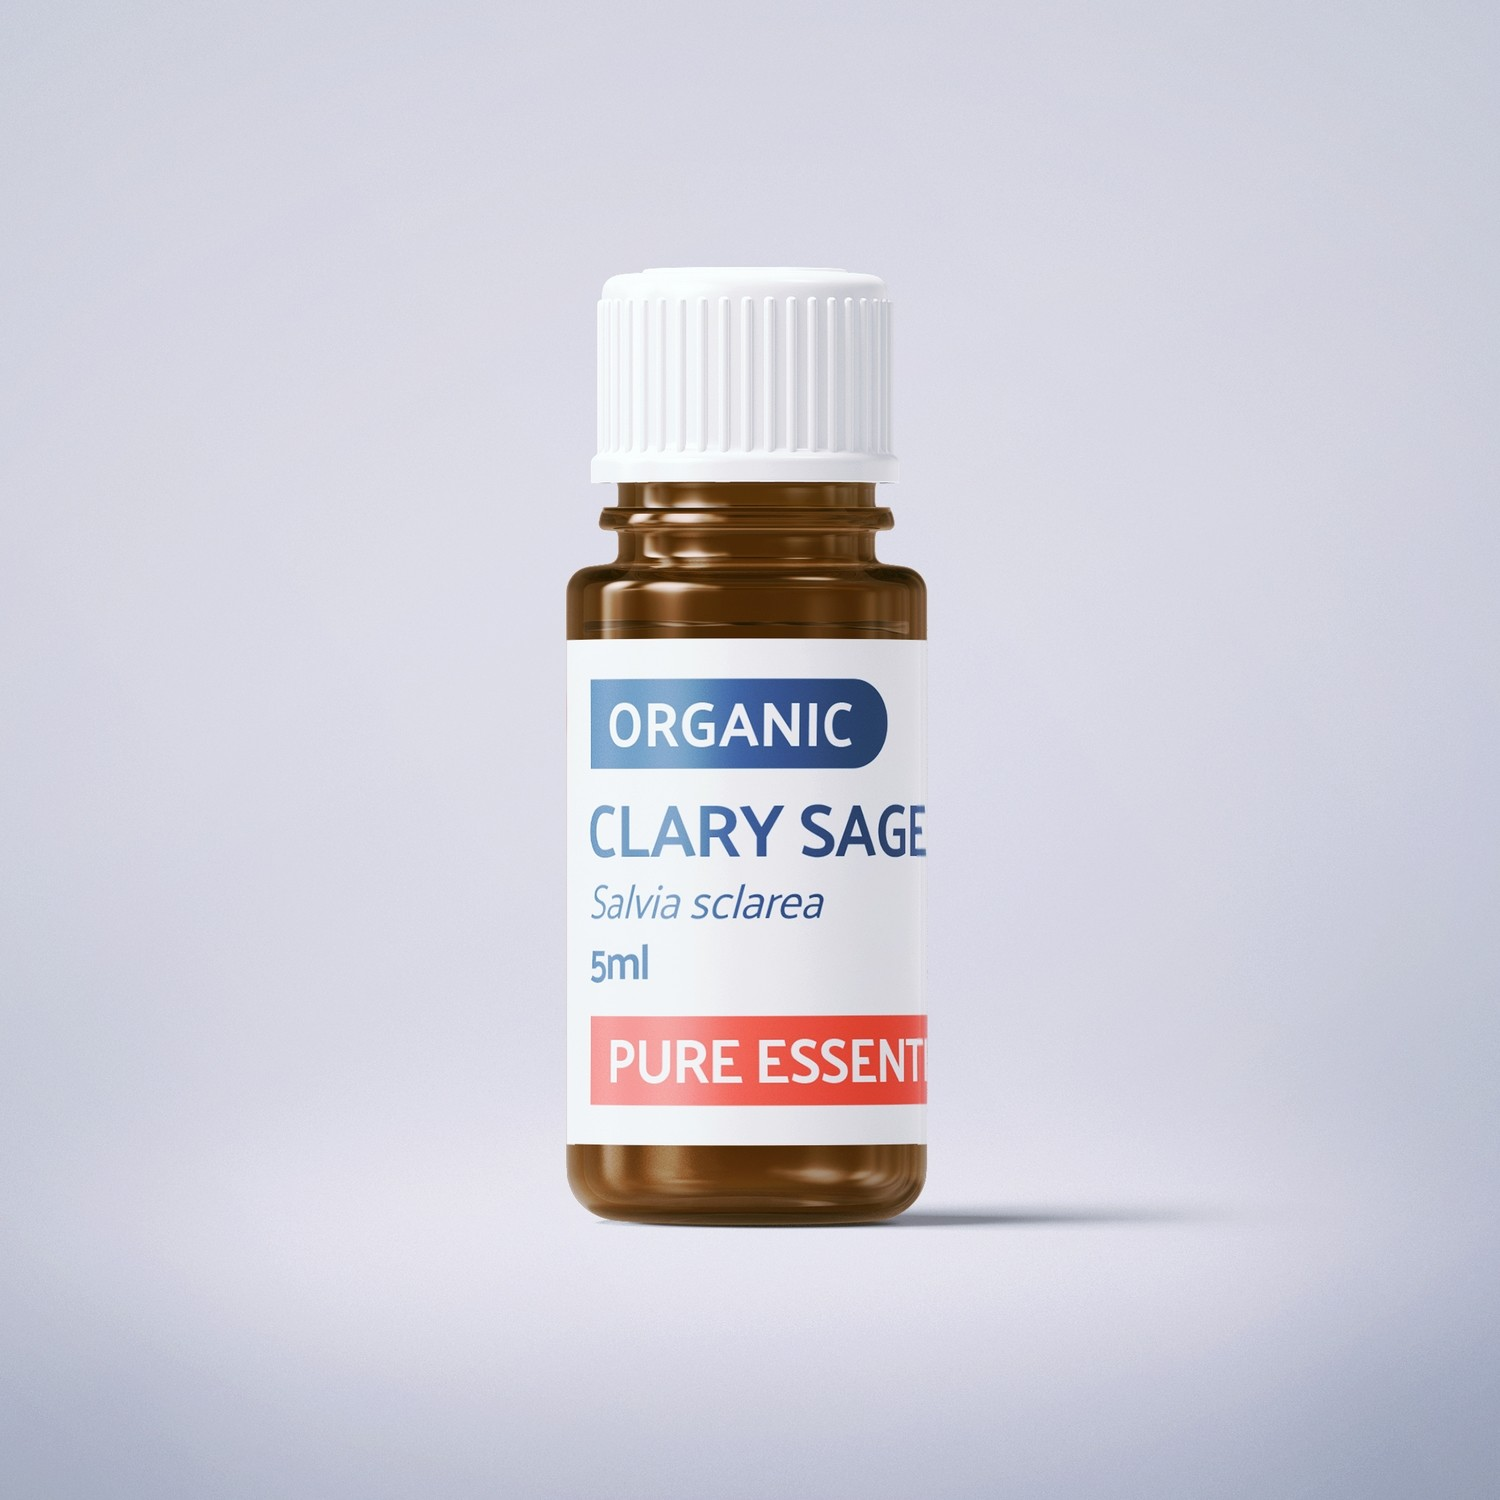 Organic Clary Sage - 5ml - 100% Pure Essential Oil